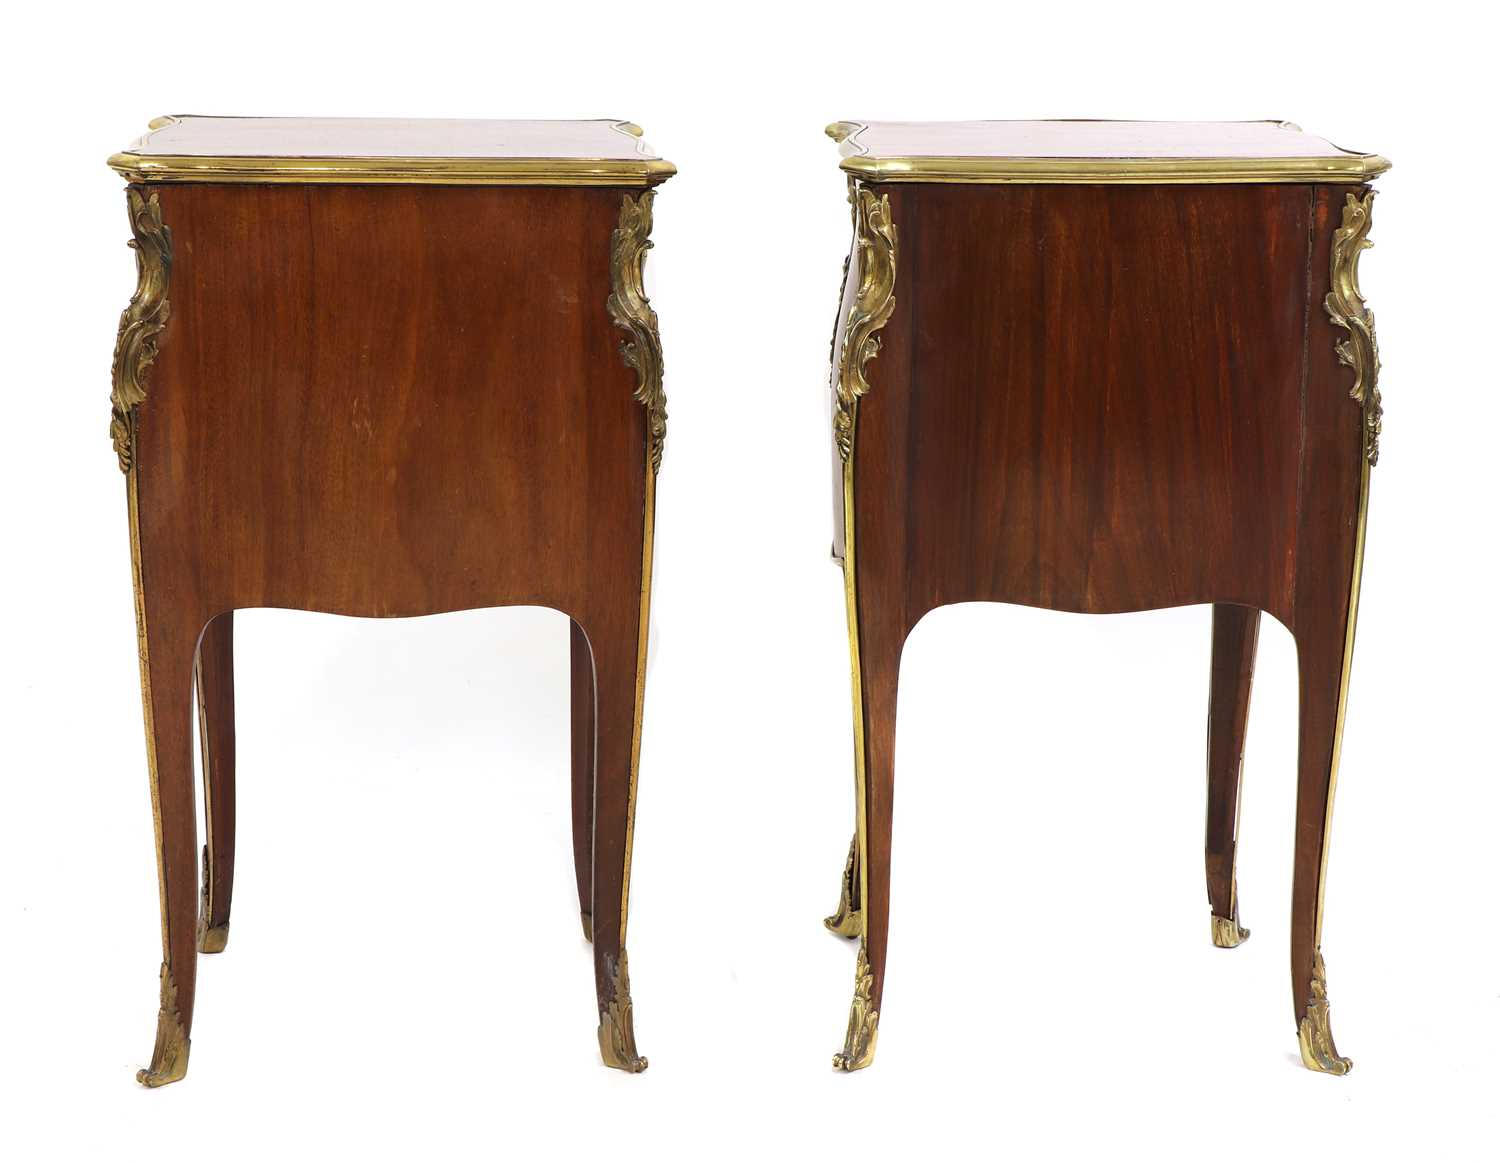 A pair of French Louis XV-style kingwood and ormolu night tables, - Image 4 of 9